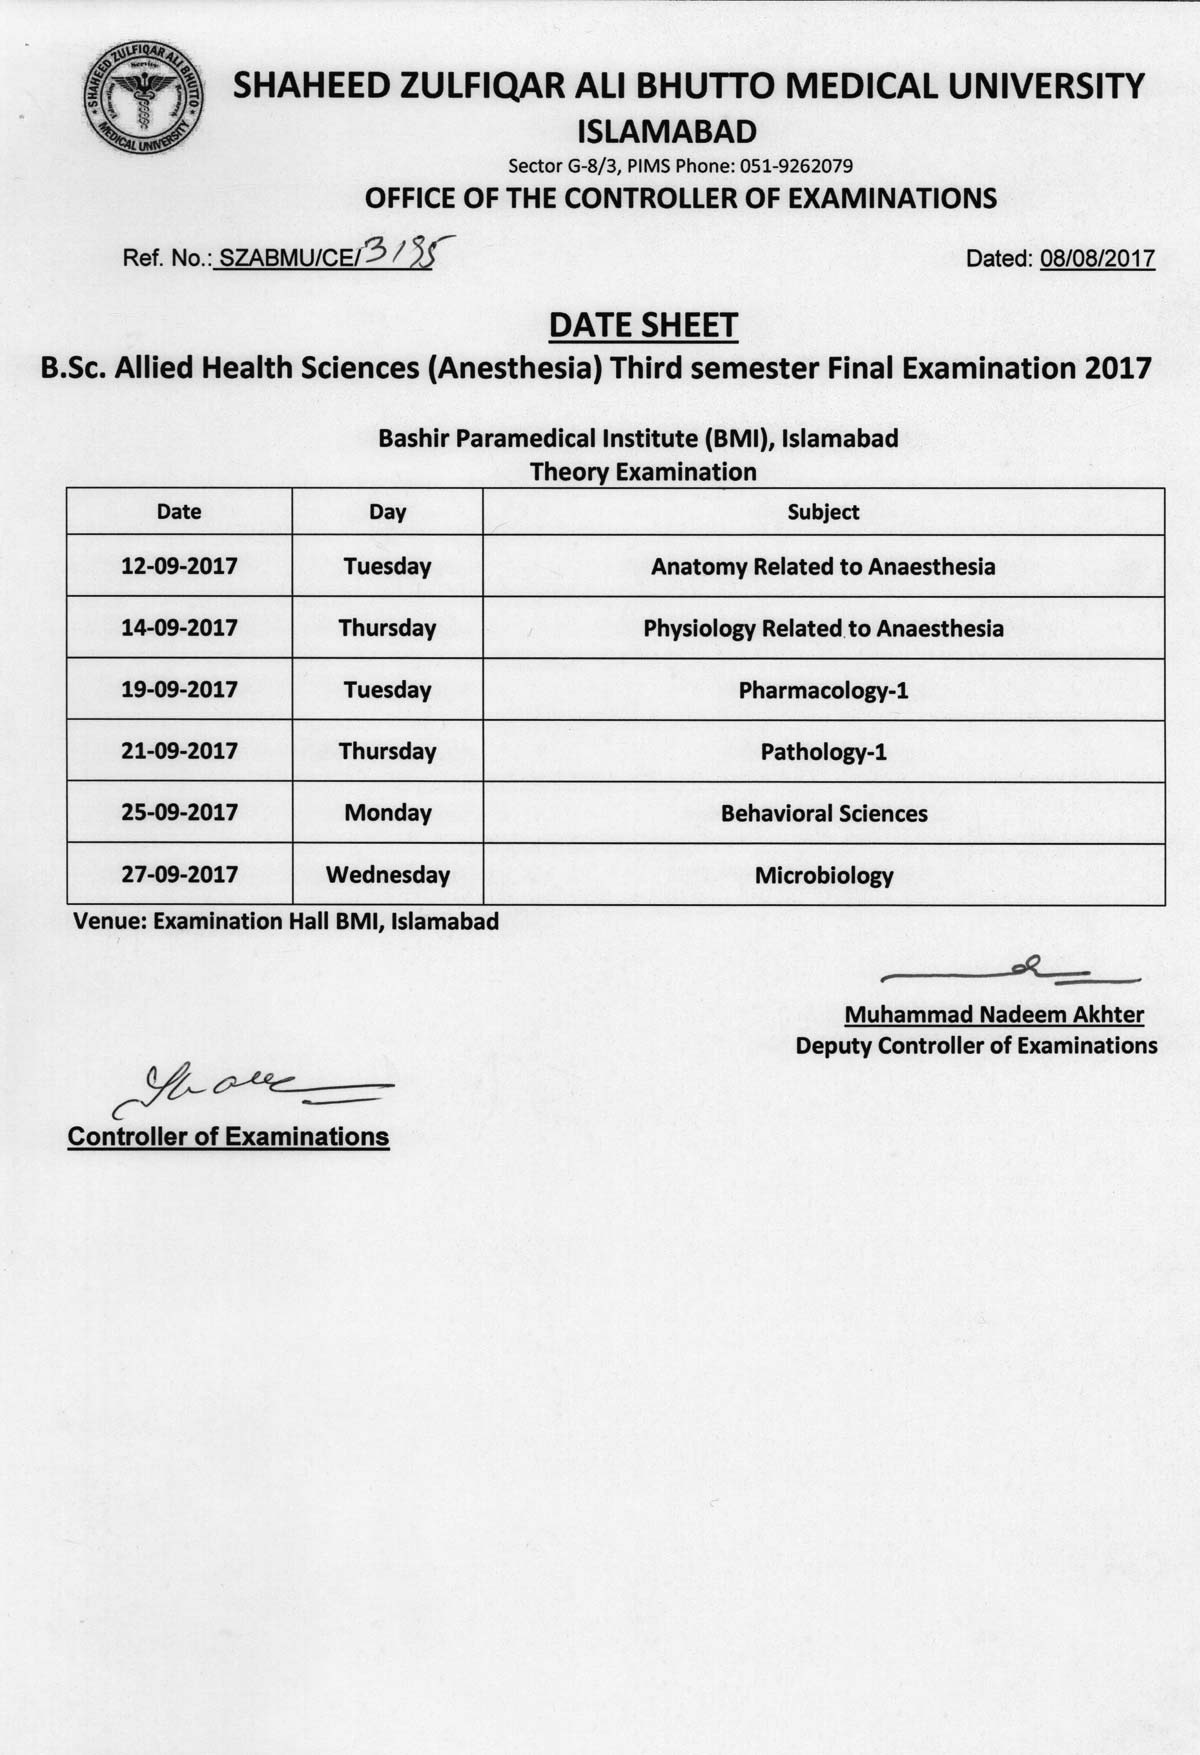 Date sheet - B.Sc. Allied Health Sciences Final Exams 2017